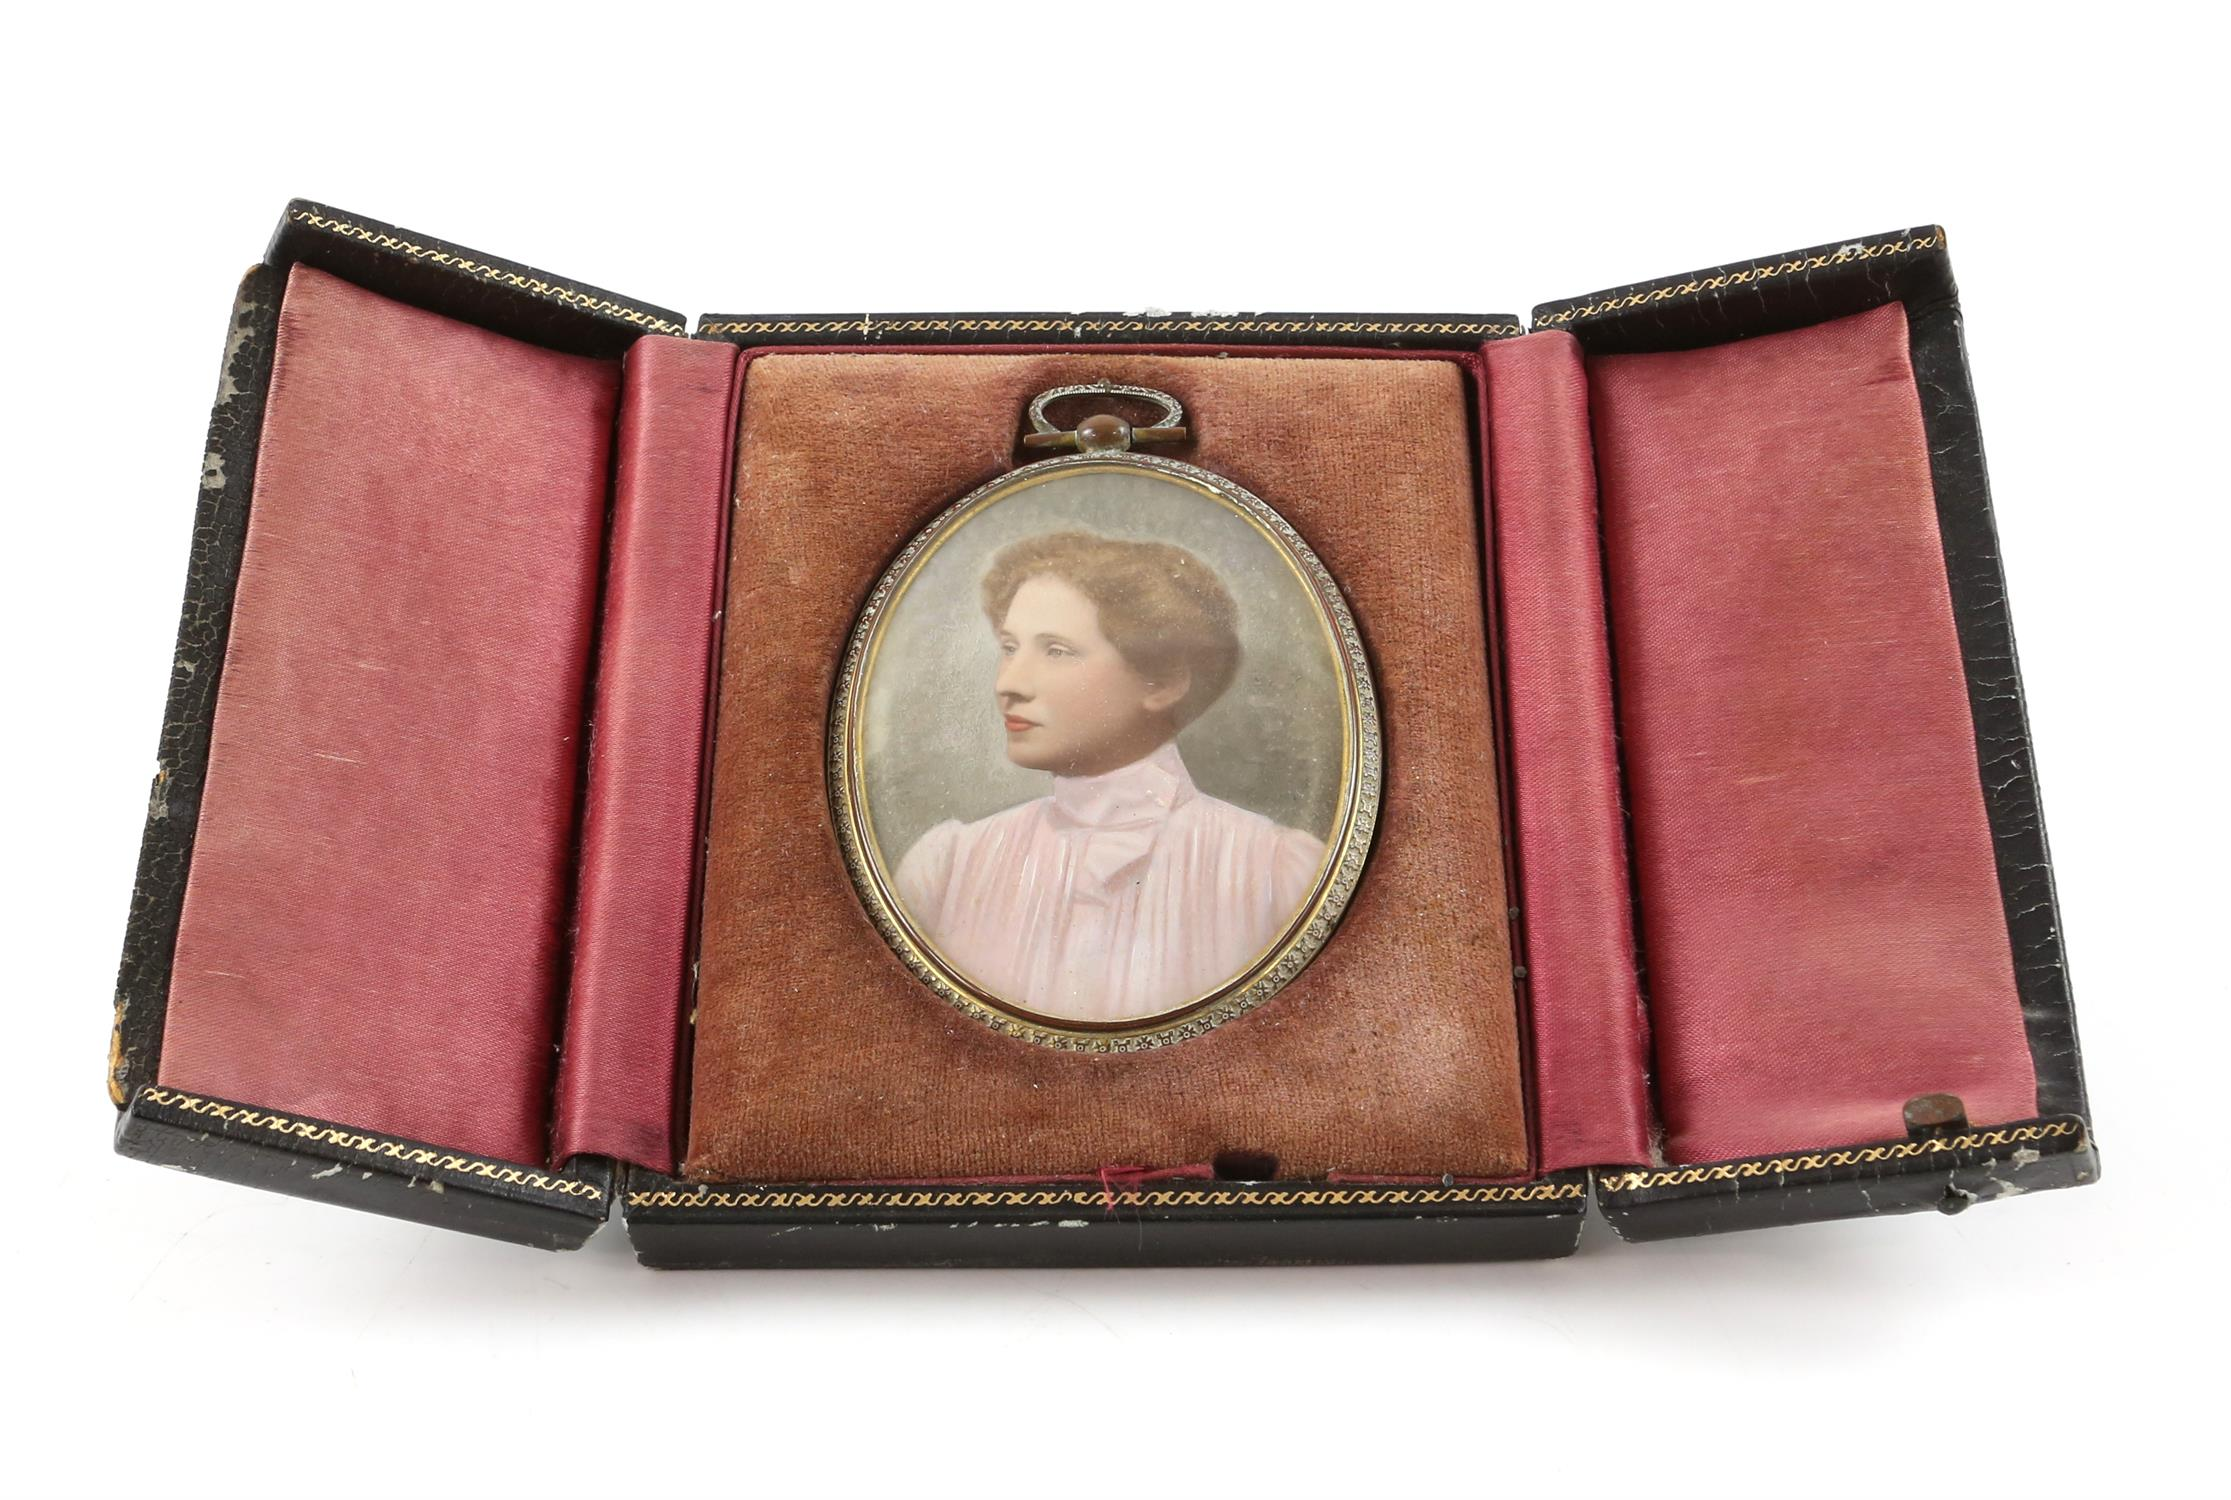 Early 20th century portrait miniature of a lady in a high-collared blouse with her hair up,